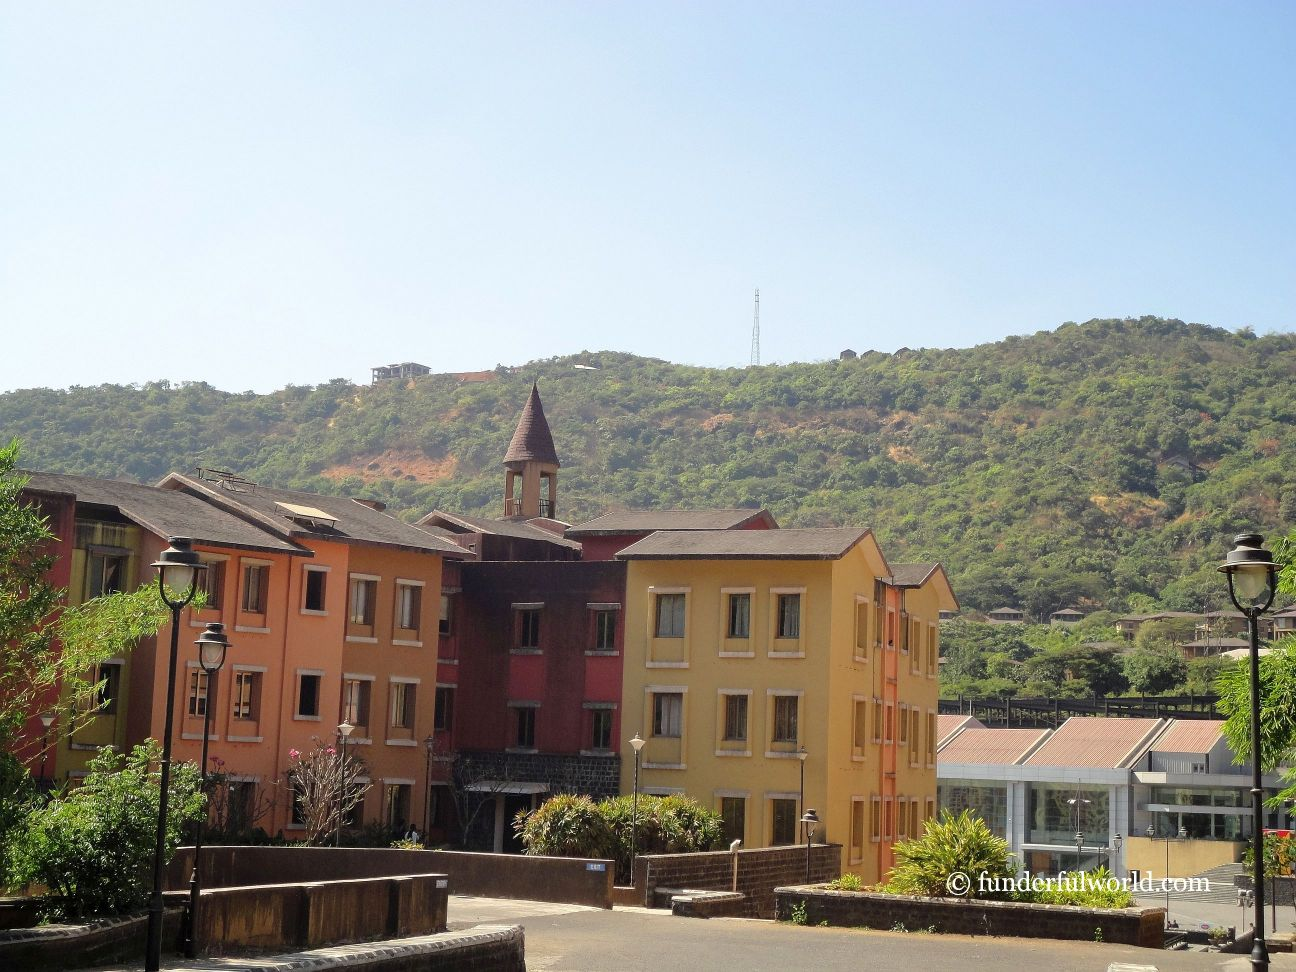 Italy or India? Lavasa, Maharashtra, India.